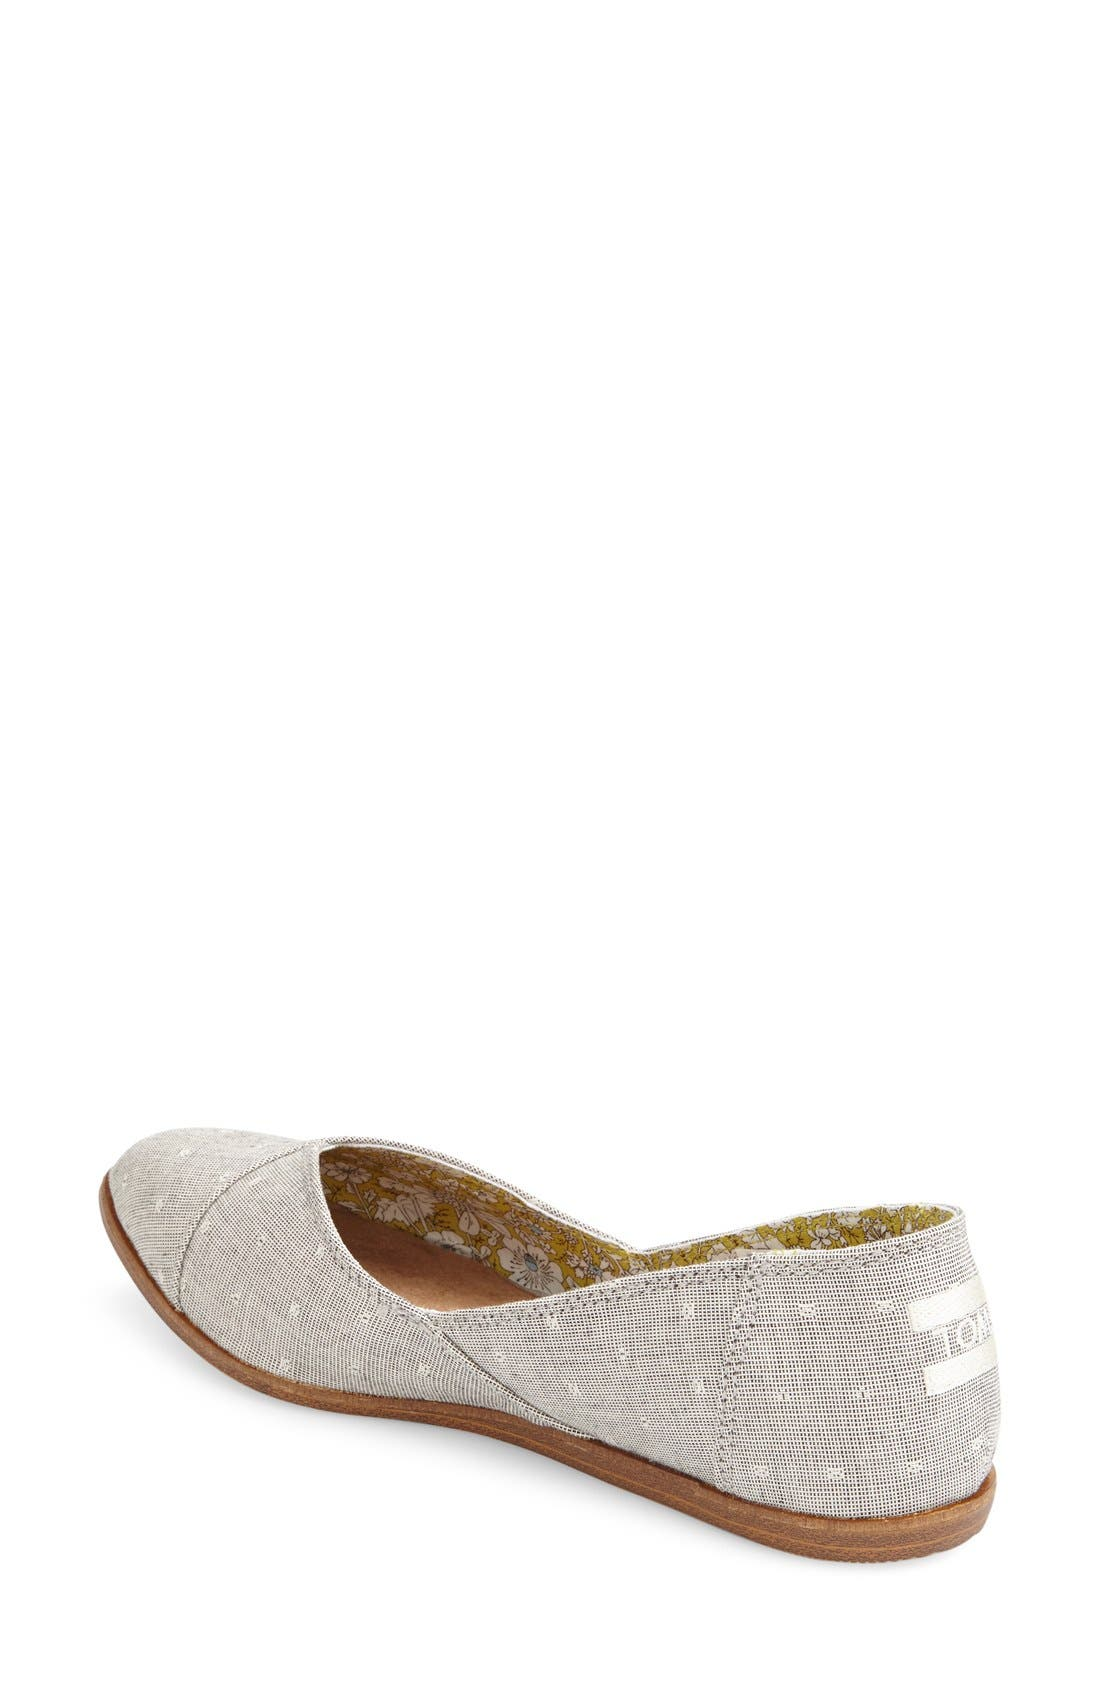 'Jutti' Chambray Flat,                             Alternate thumbnail 2, color,